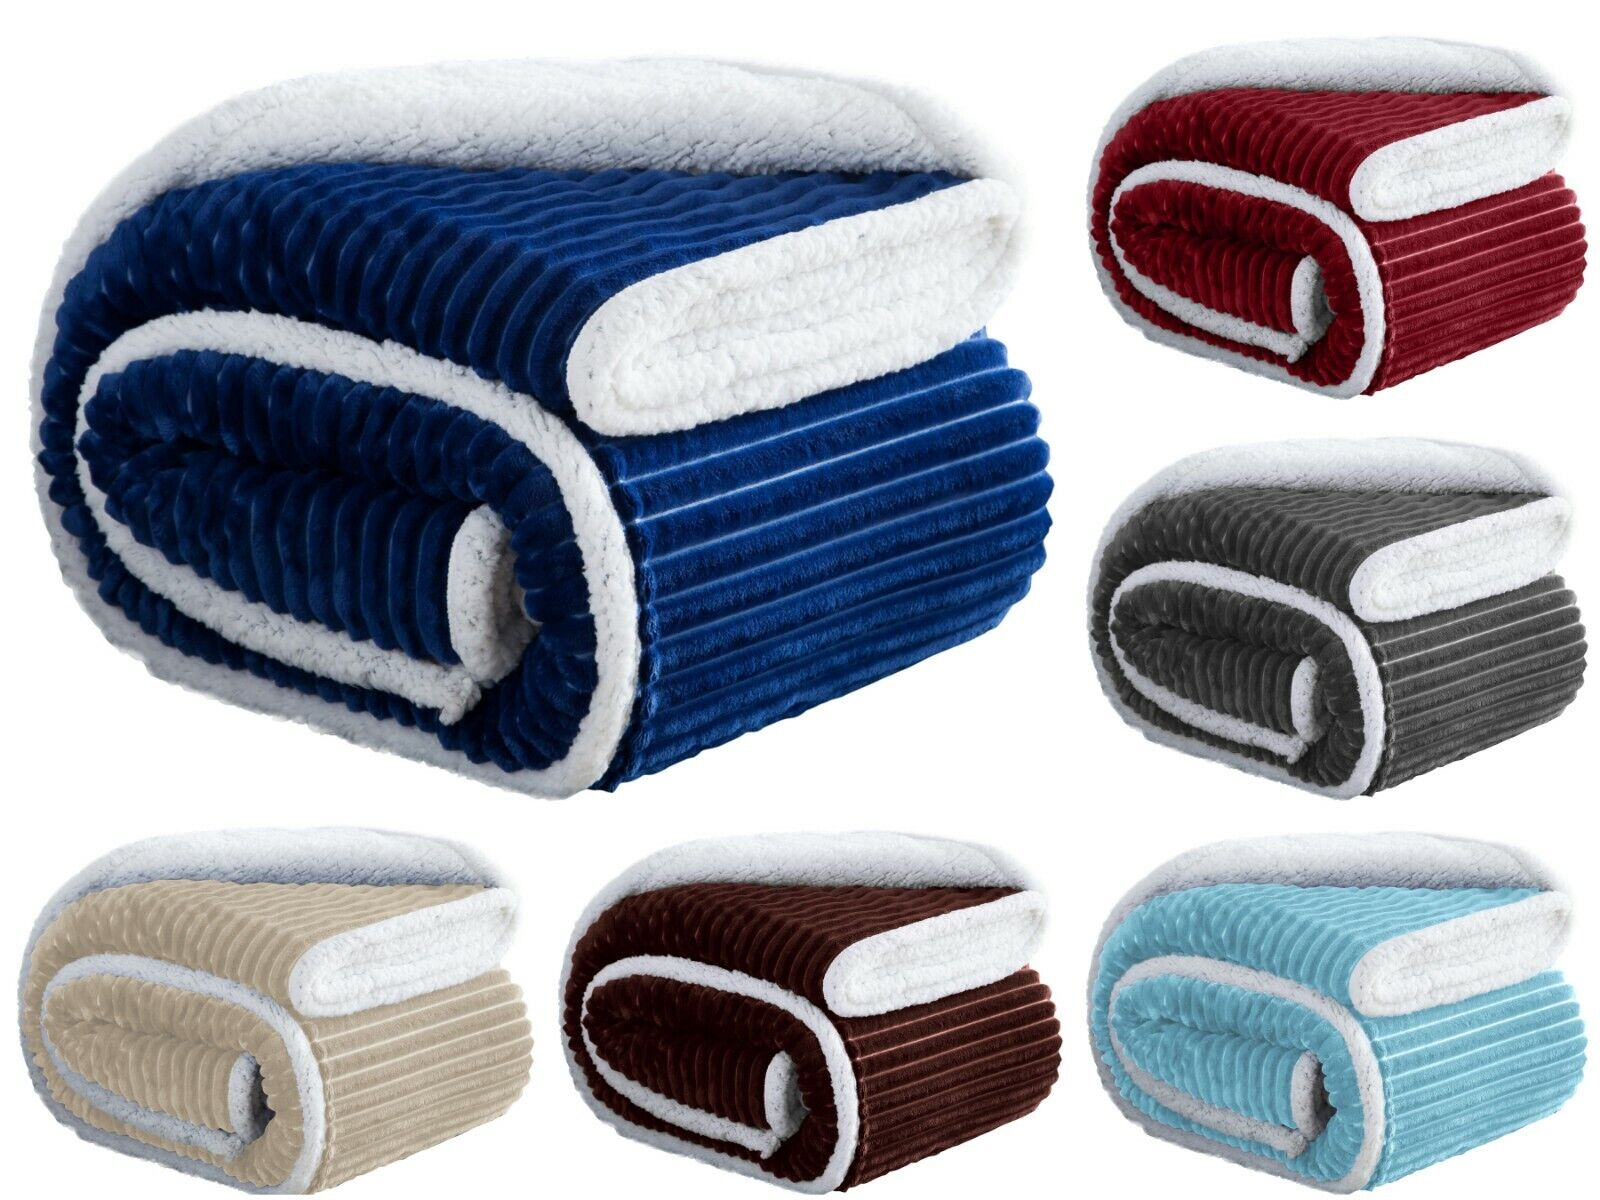 Soft Plush & Fuzzy Throw Sherpa Lined Fleece Bed Blanket & C